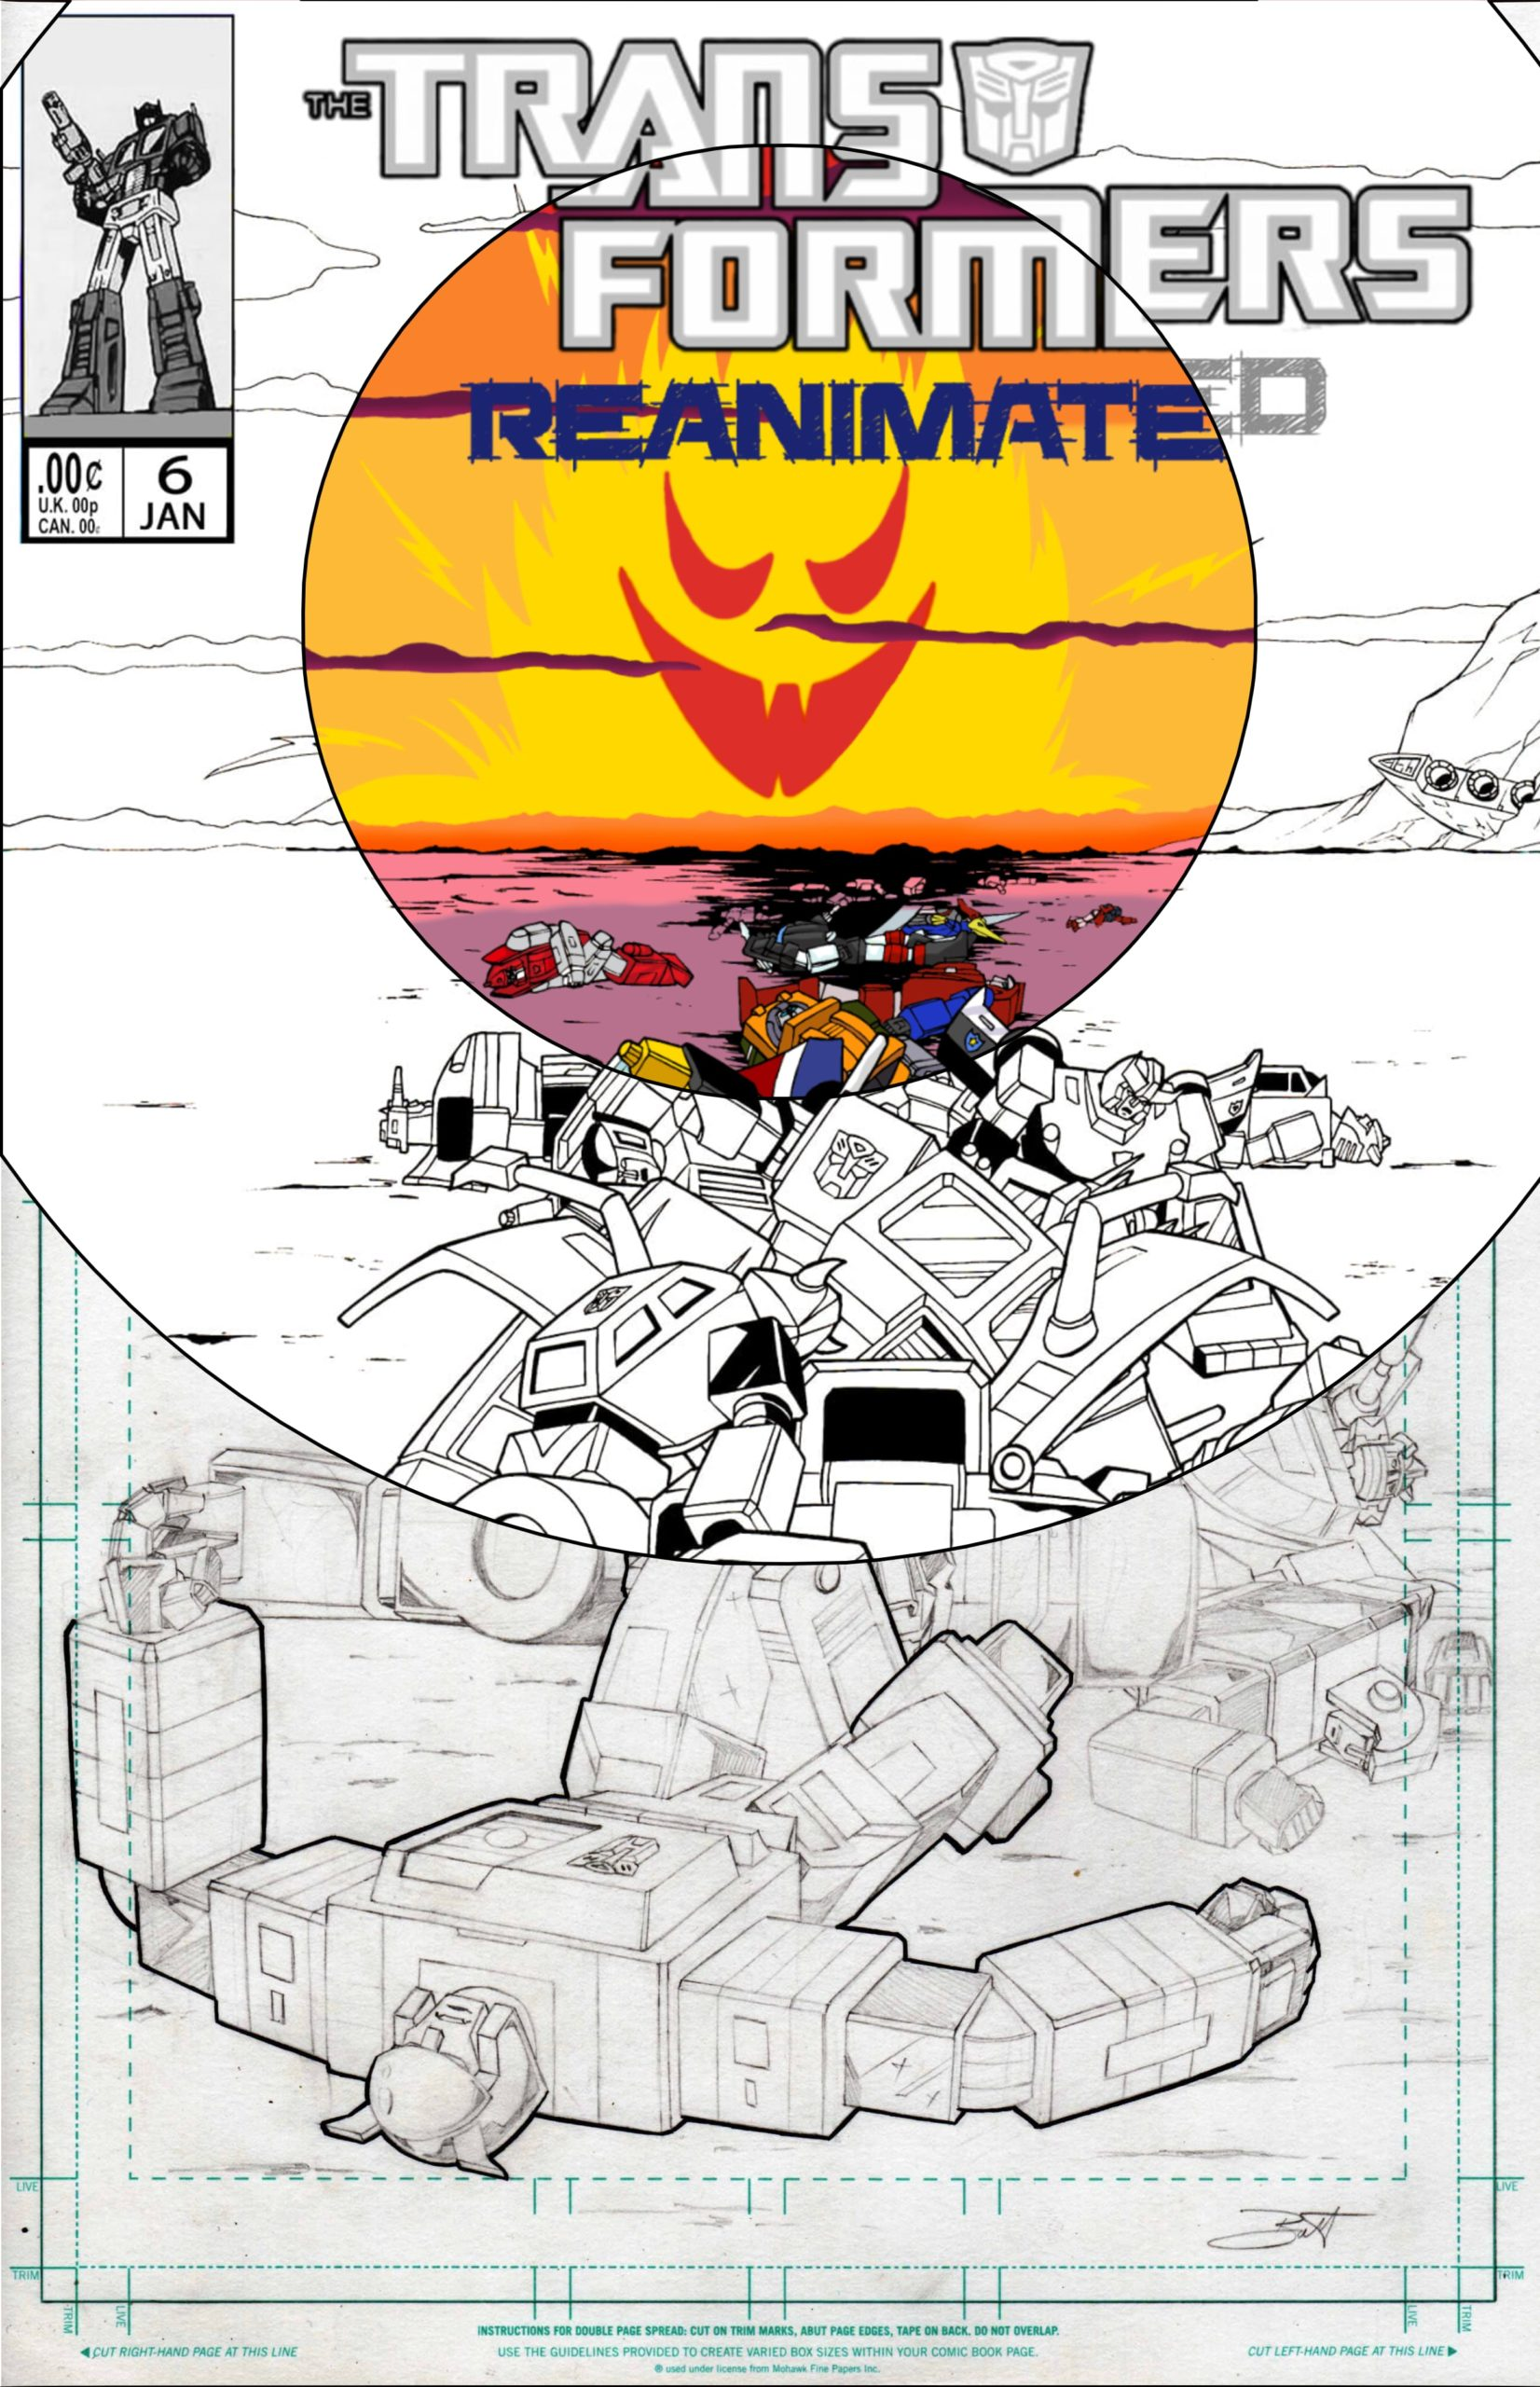 The Art Of Transformers: REANIMATED Issue 6